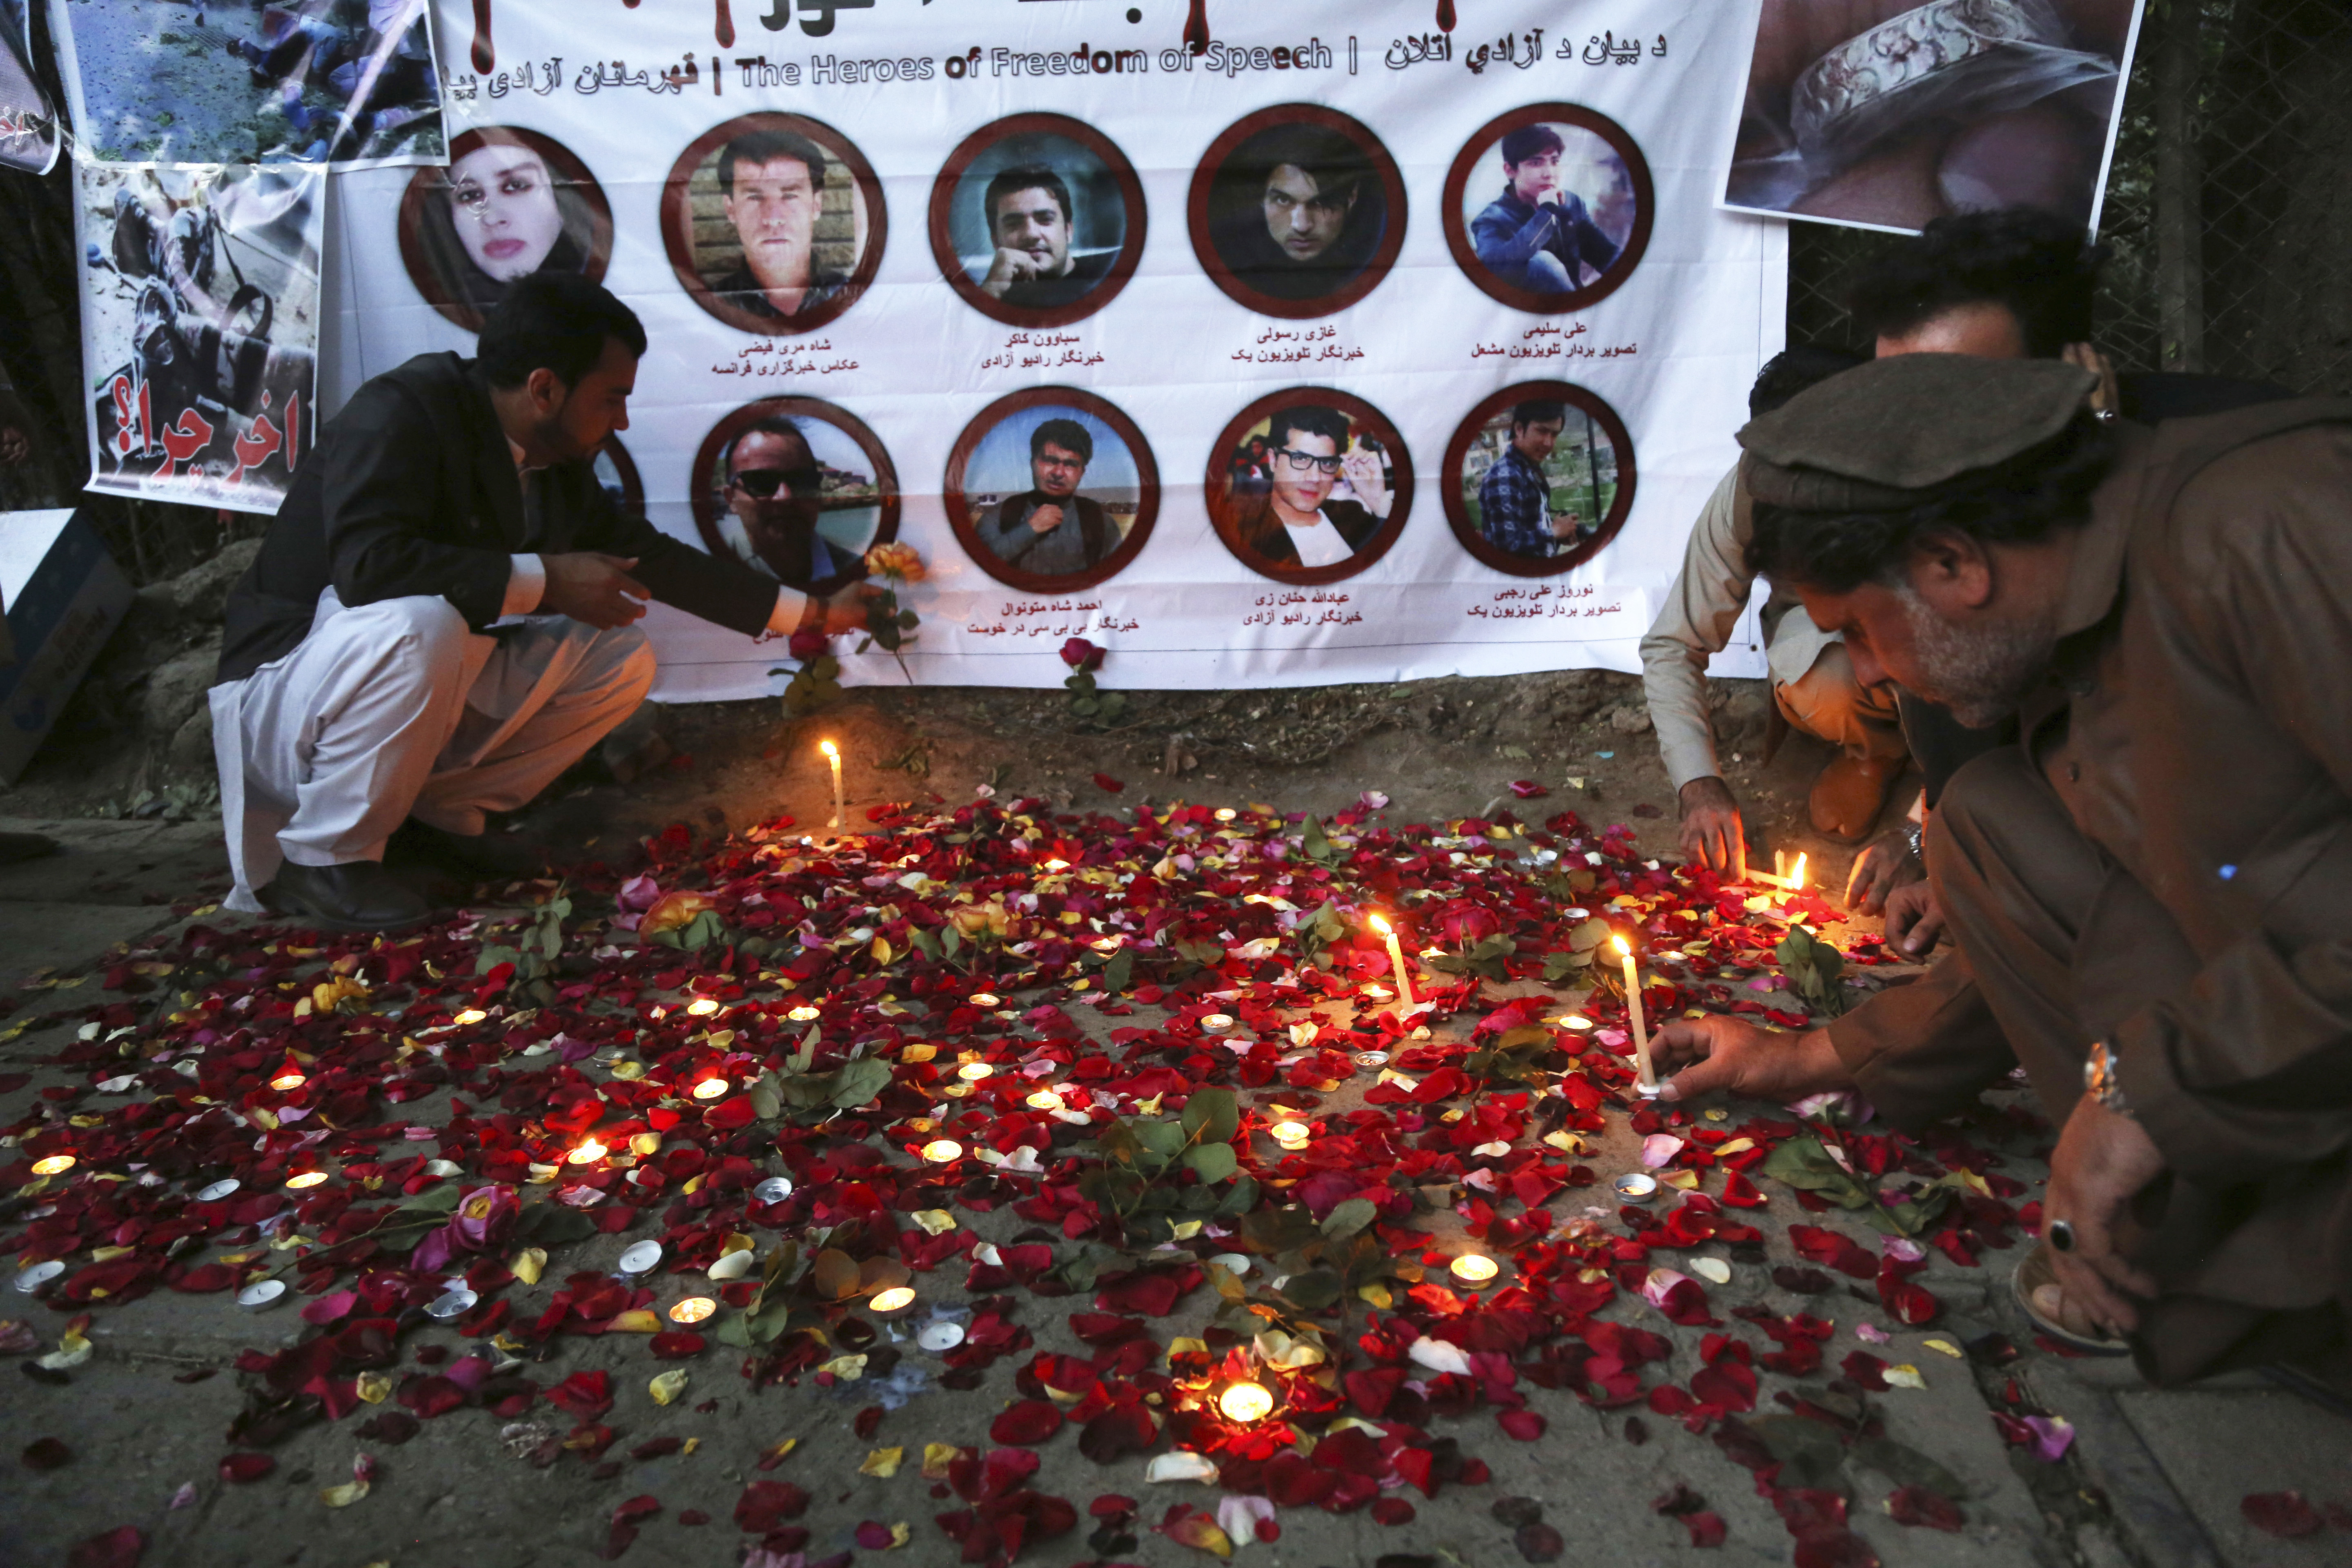 Afghan residents light candles to pay tribute to Afghan journalists killed in a suicide attack in Kabul, Afghanistan, May 3, 2018.  Two Islamic State suicide bombers struck in Afghanistan's capital, killing 25 people, including nine journalists who h...